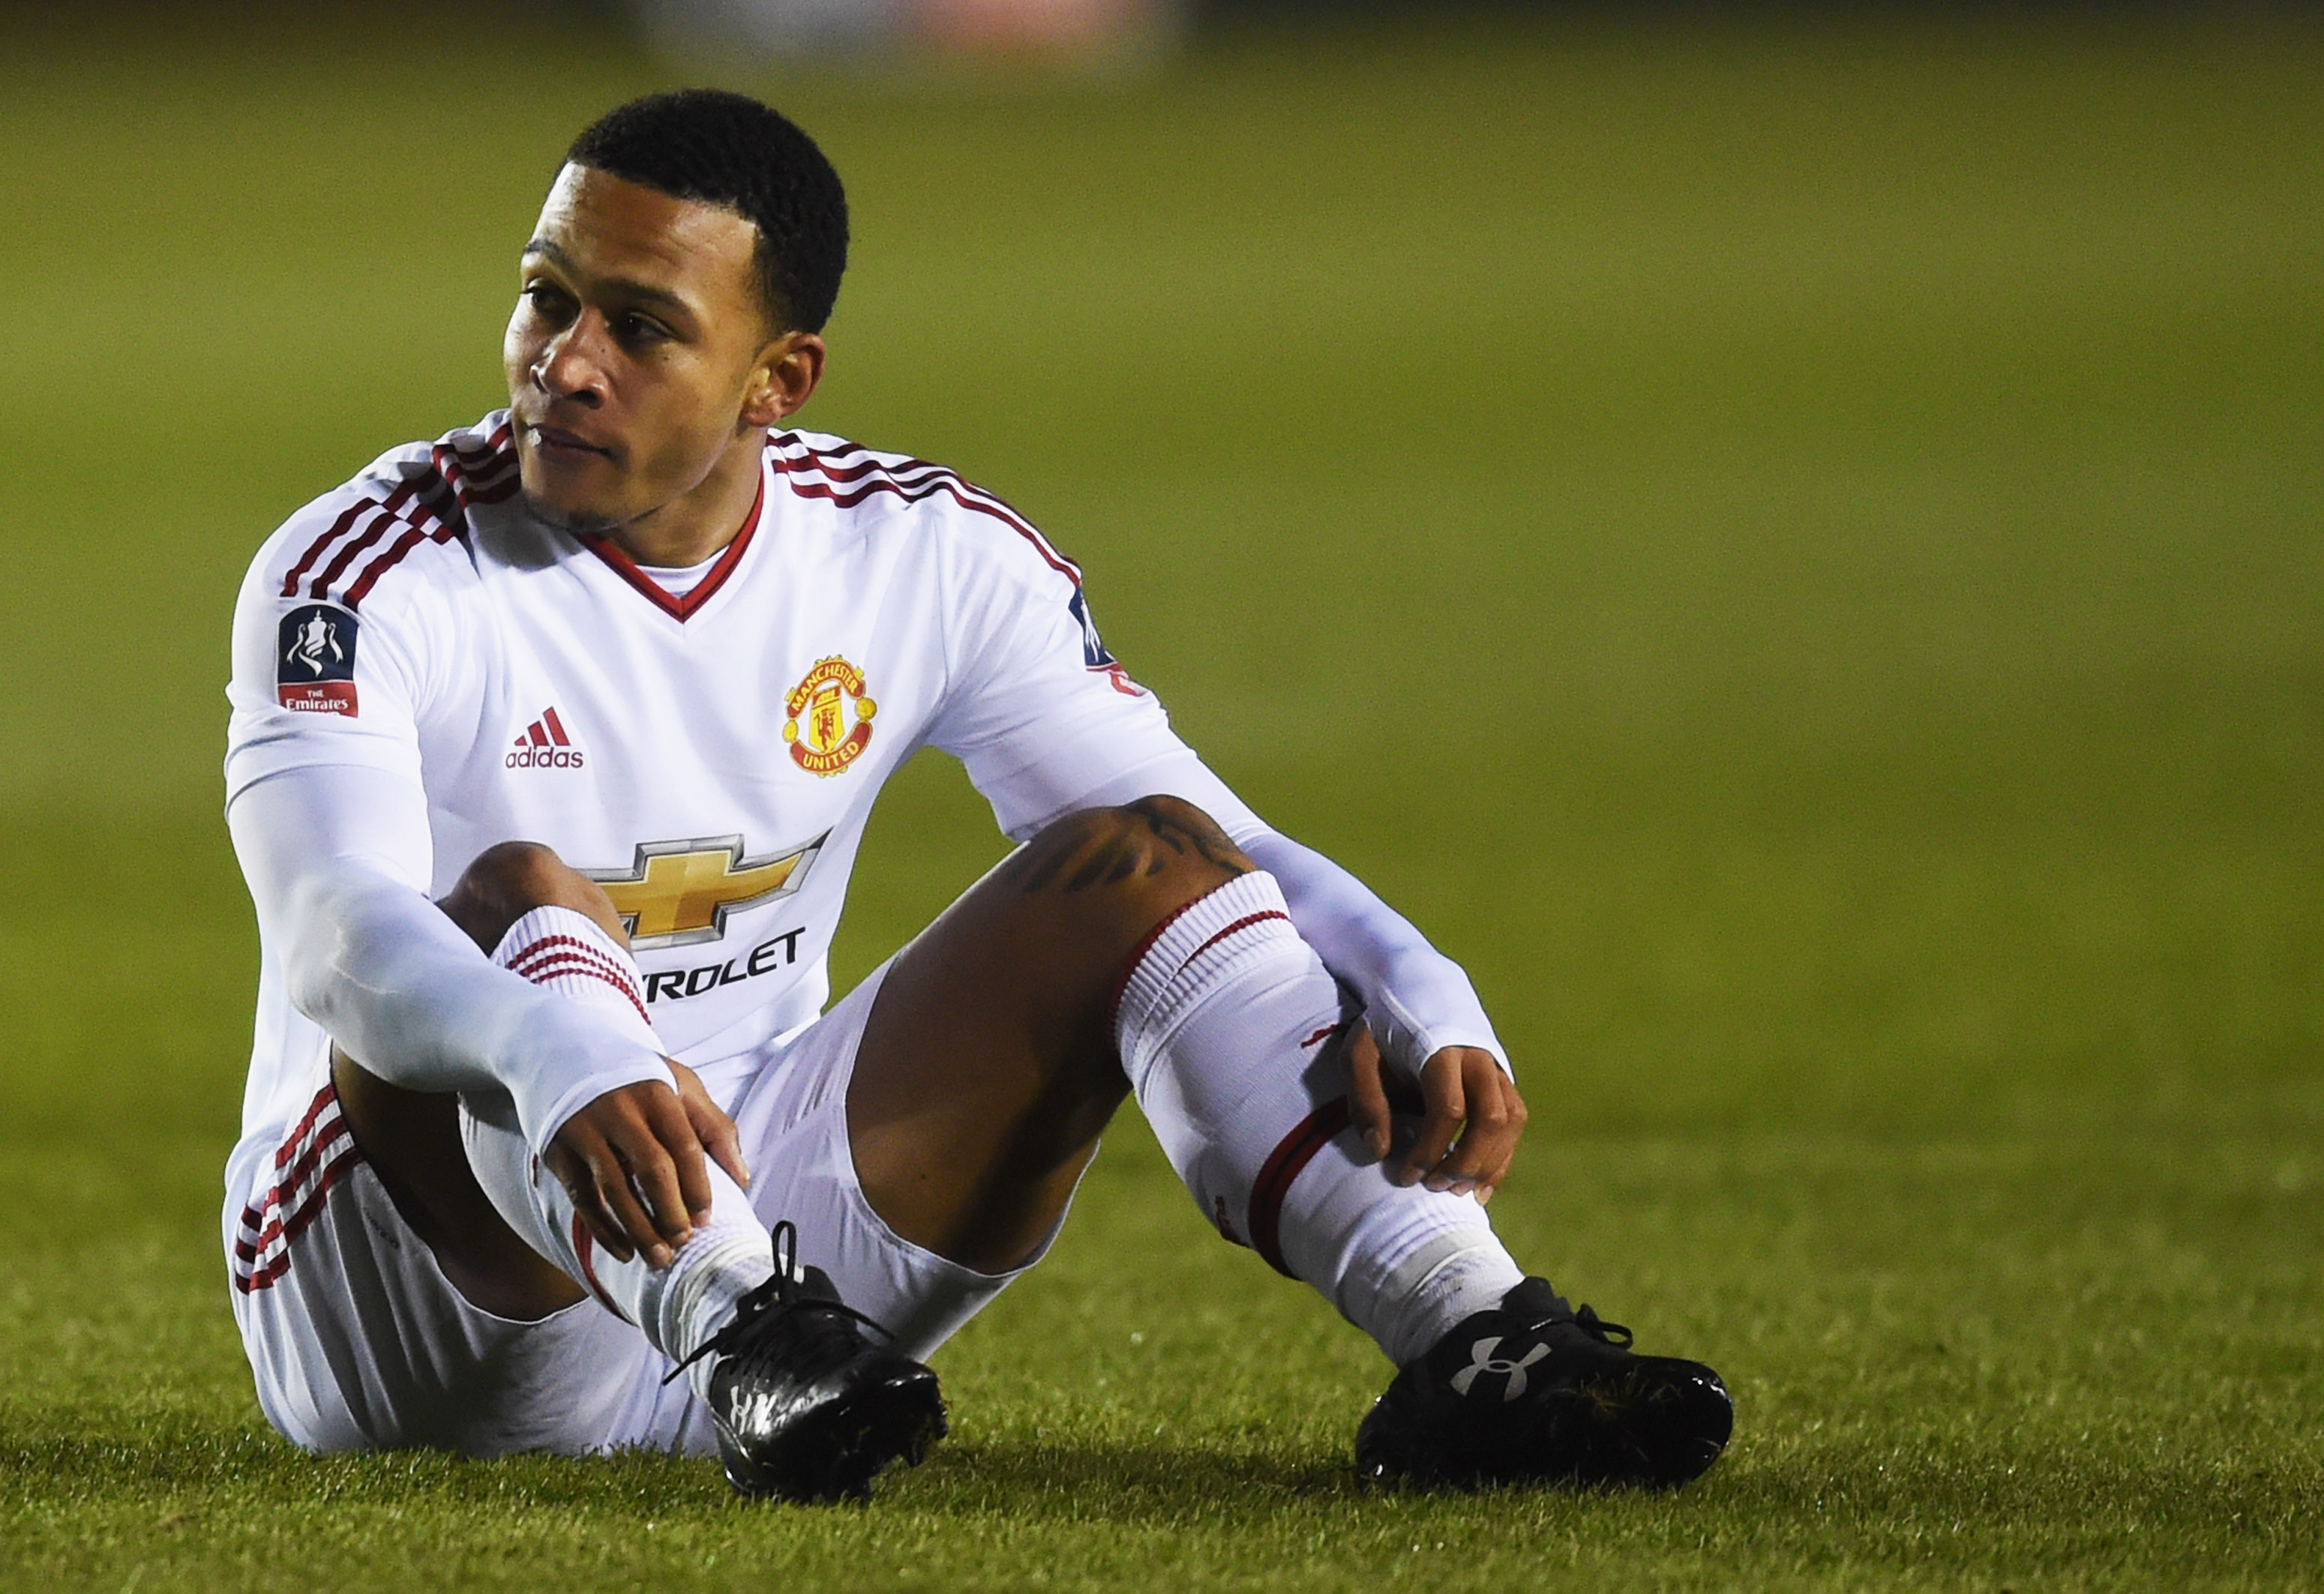 Memphis Depay had his struggles at Manchester United. (Photo by Michael Regan/Getty Images)